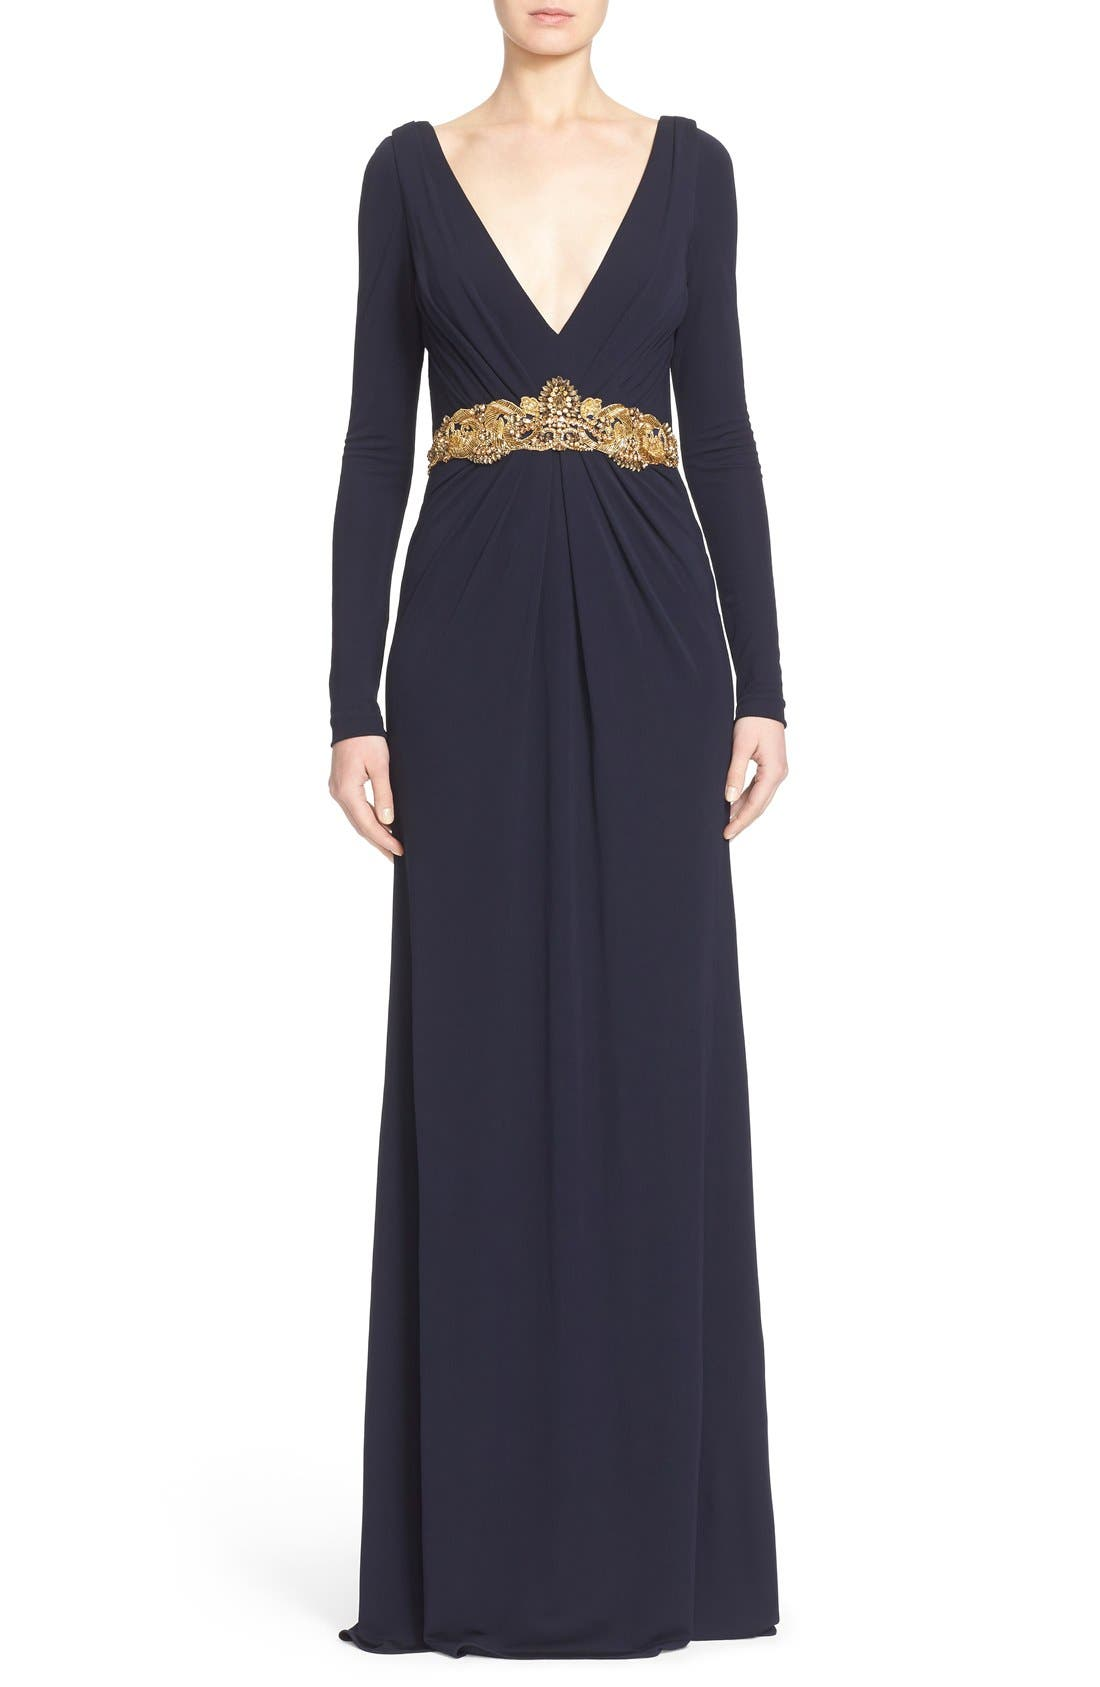 Alternate Image 1 Selected - Badgley Mischka Couture Embellished Waist Plunging V-Neck Jersey Gown